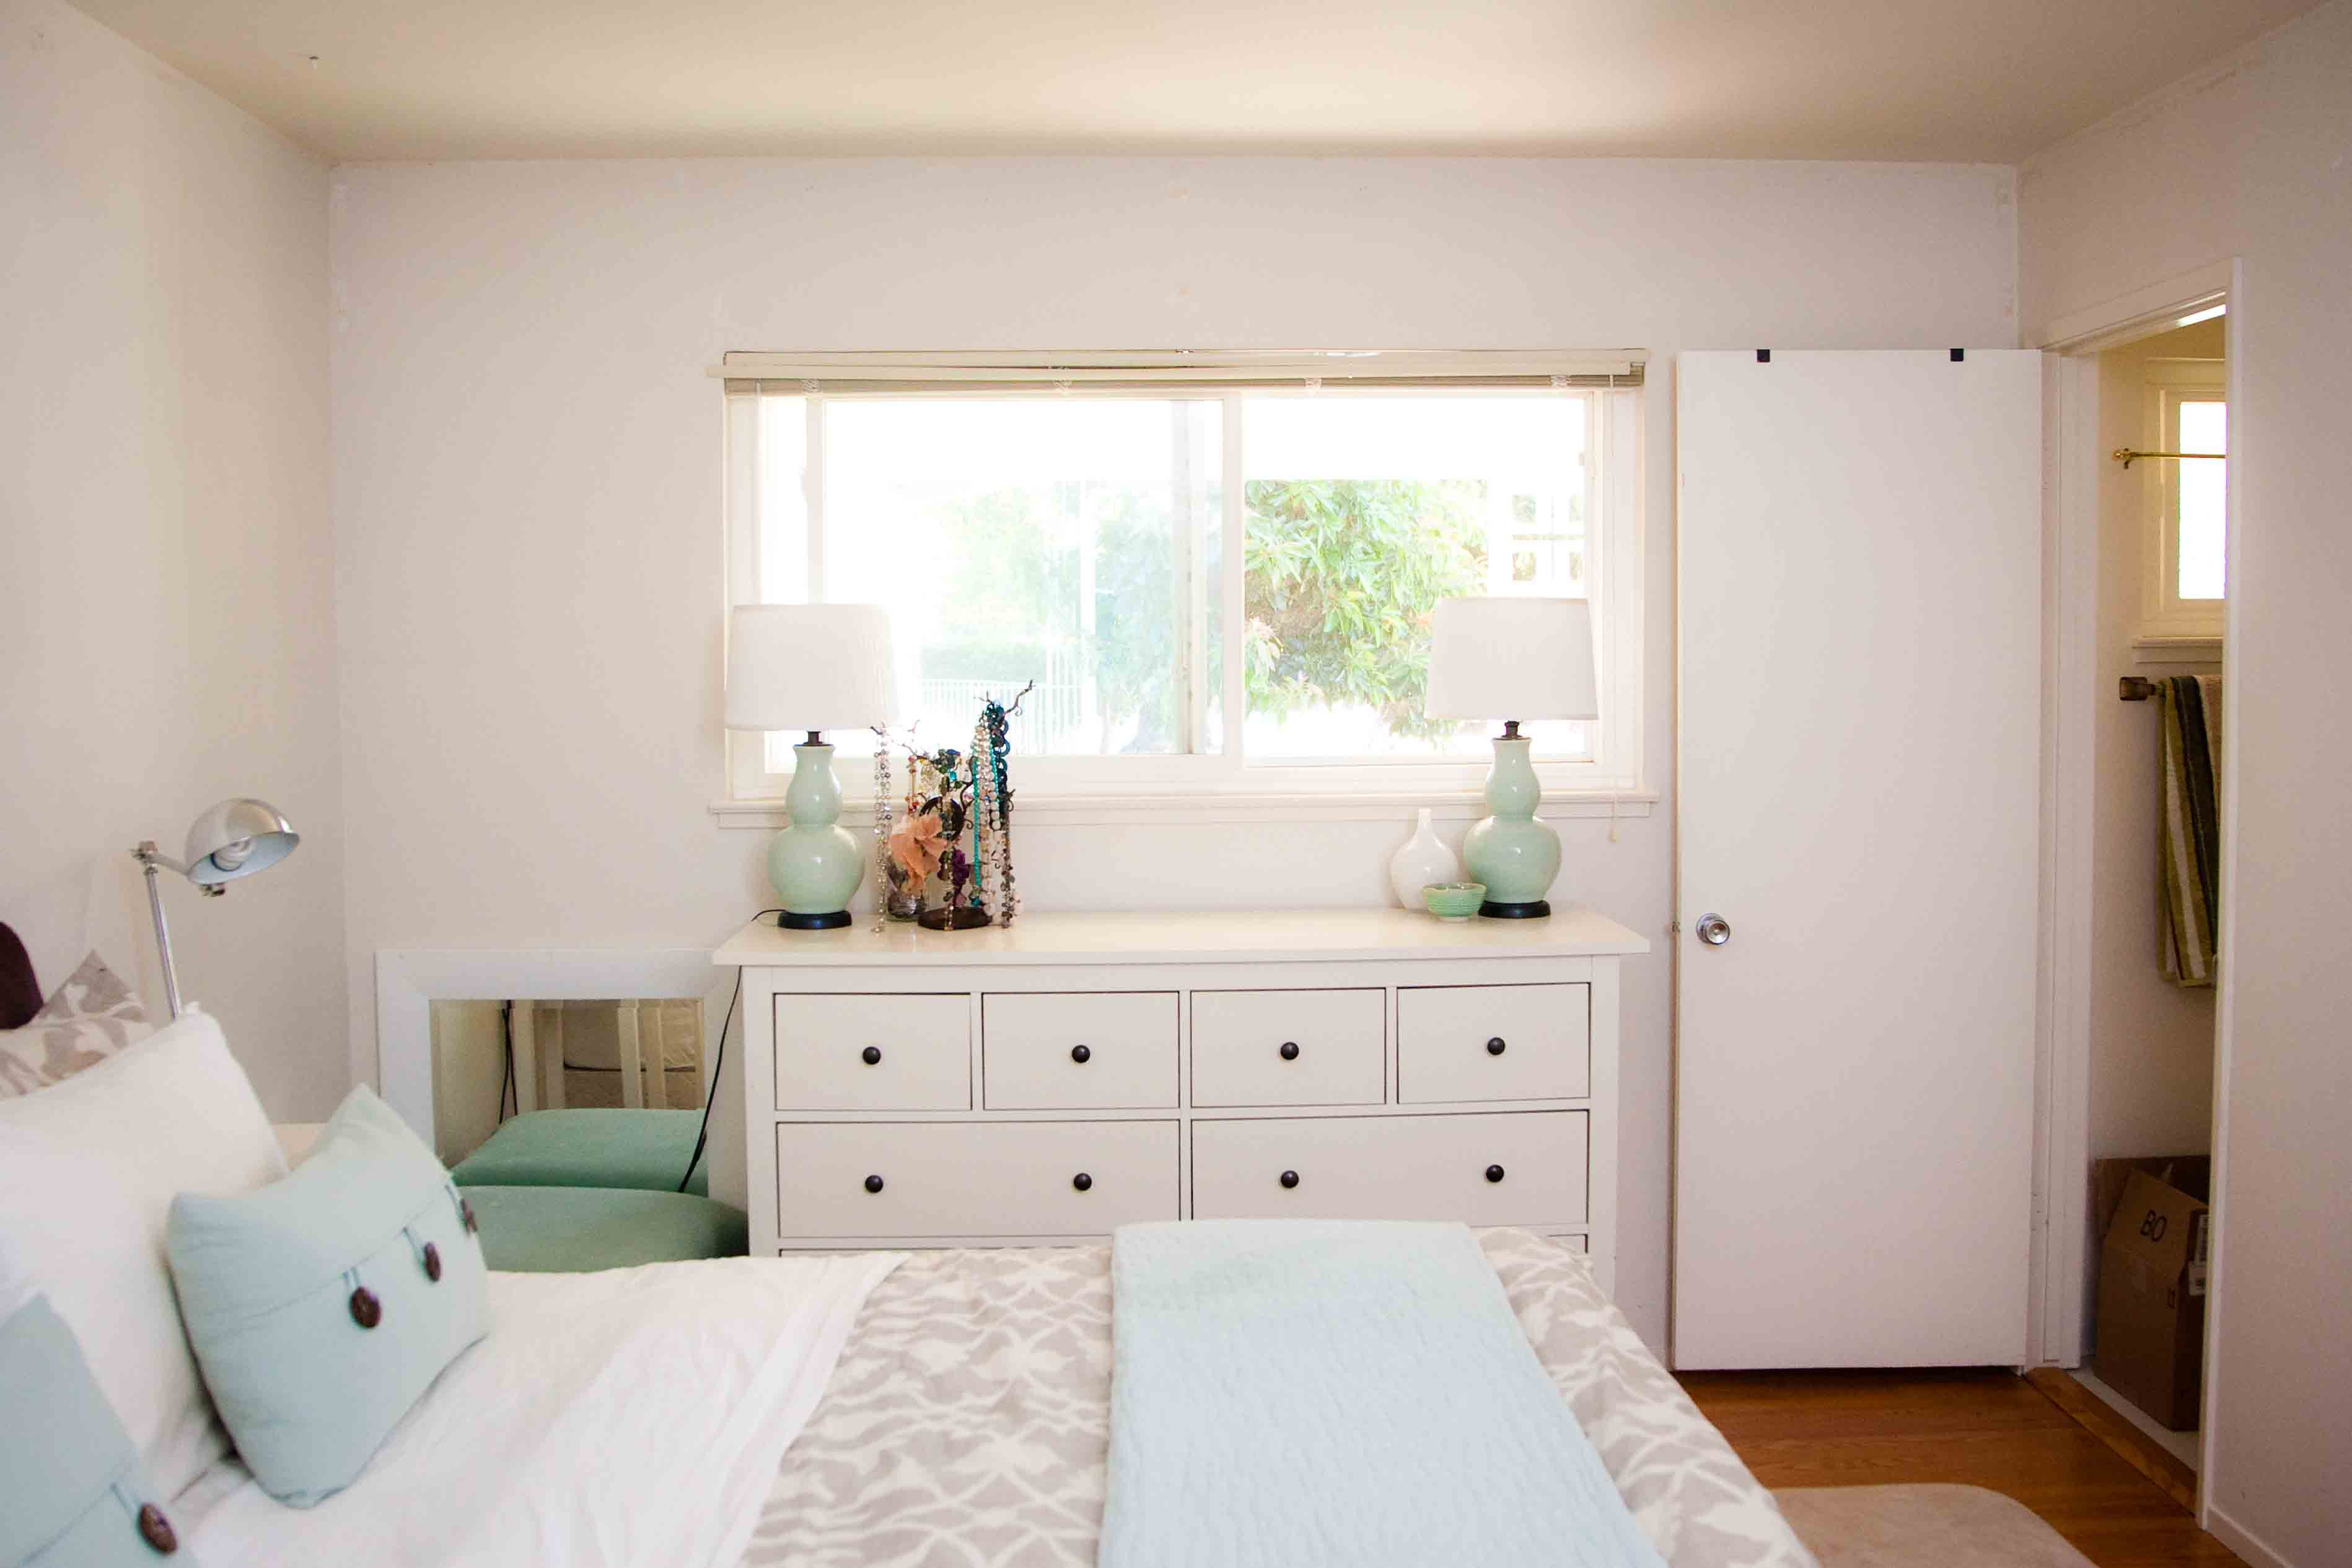 22 Modern Bedroom Window Design Ideasa Including French For Homes